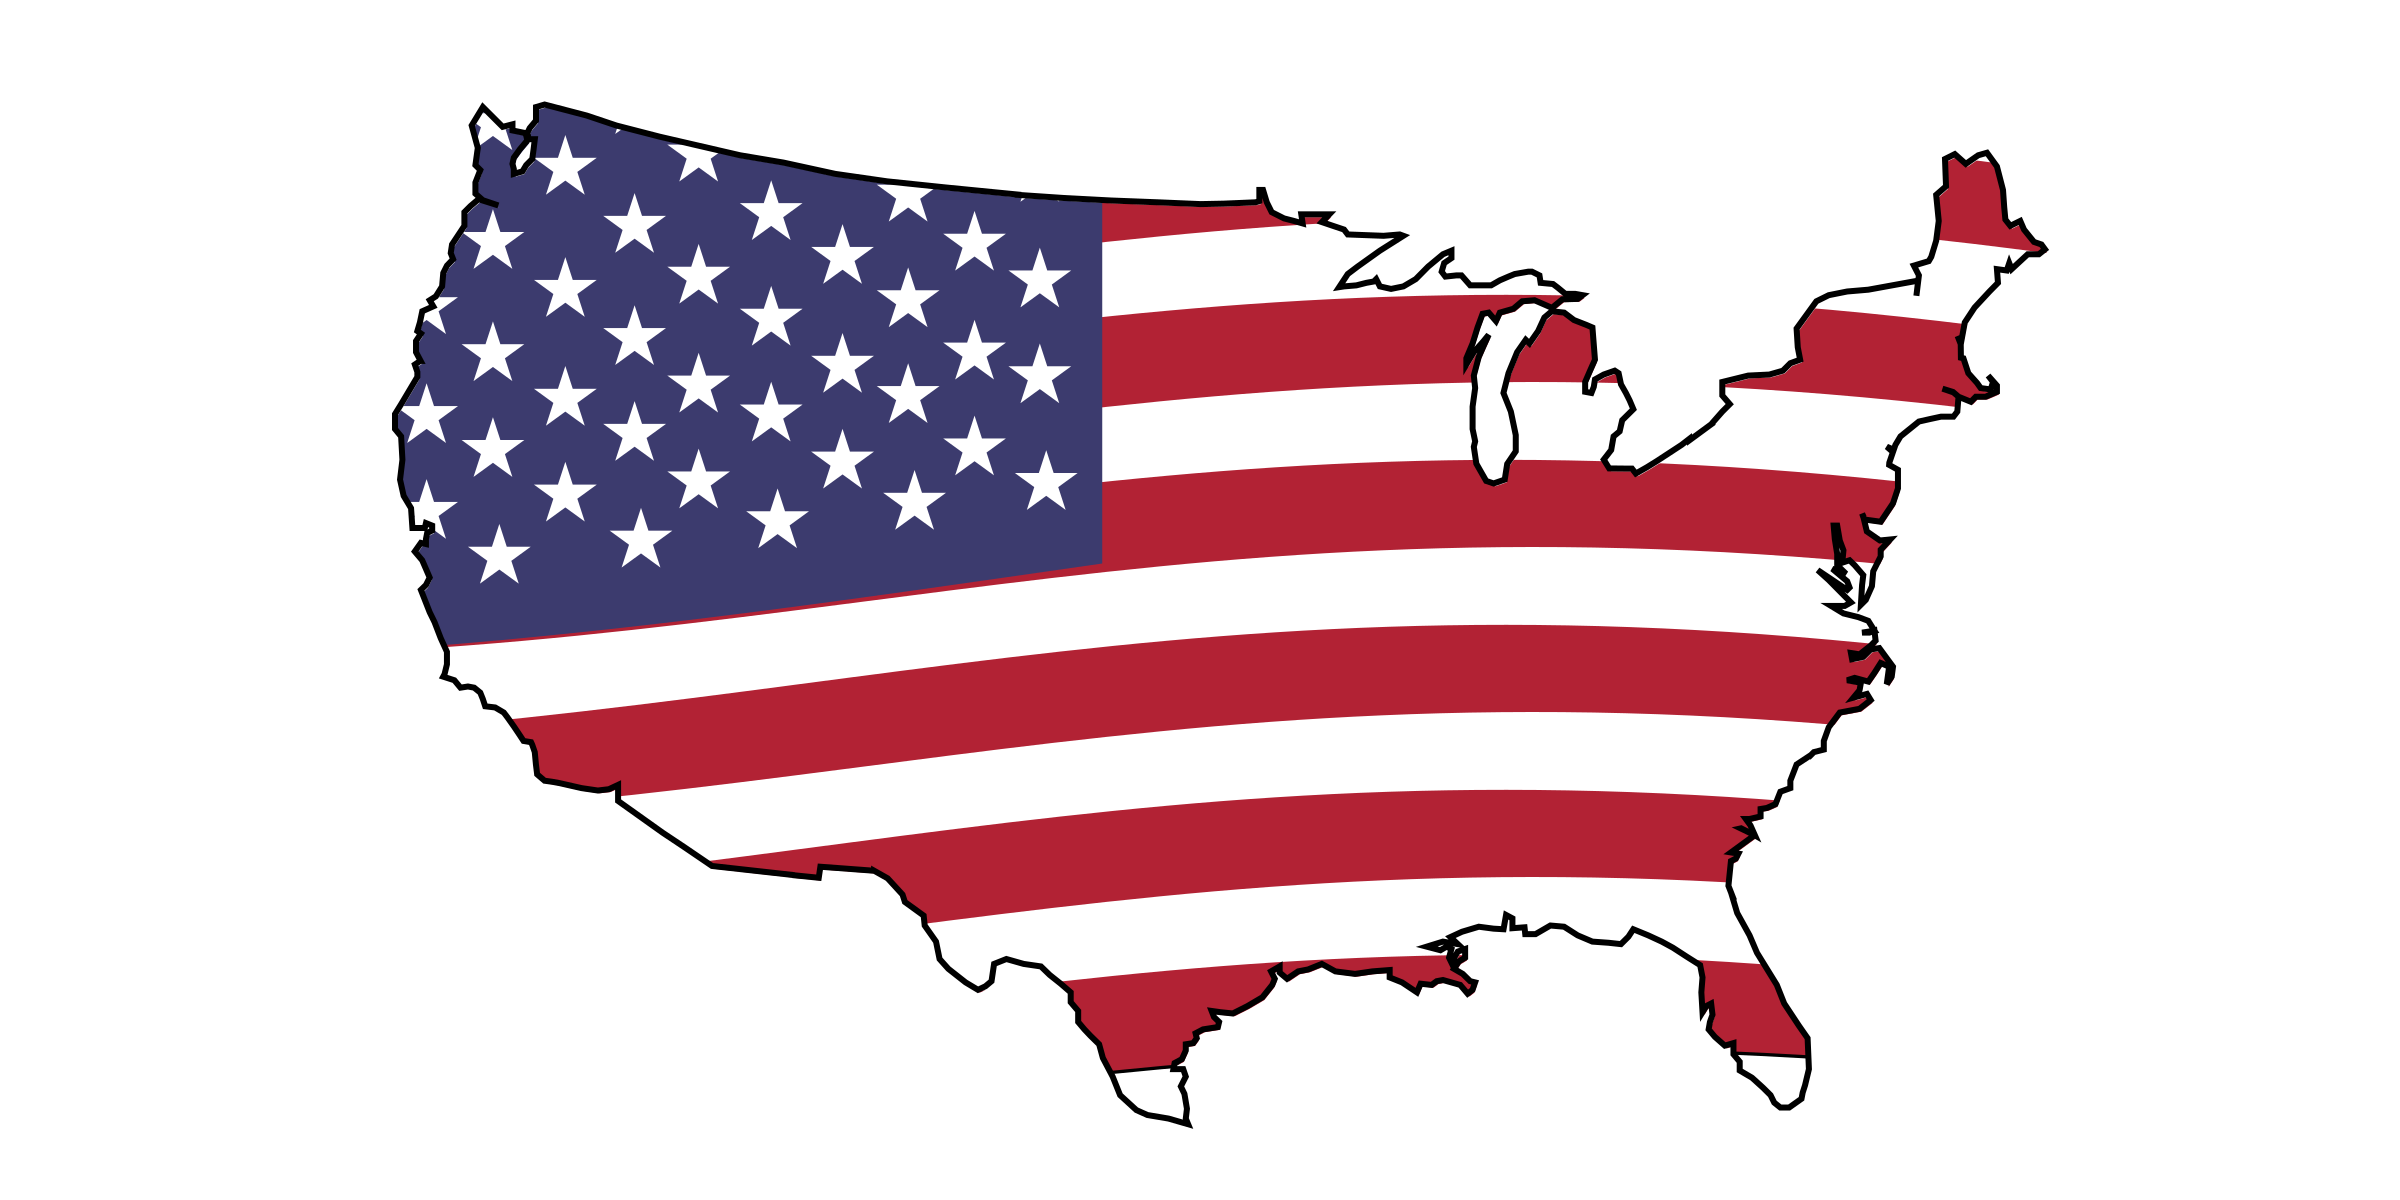 July clipart animated. Animation of american flag